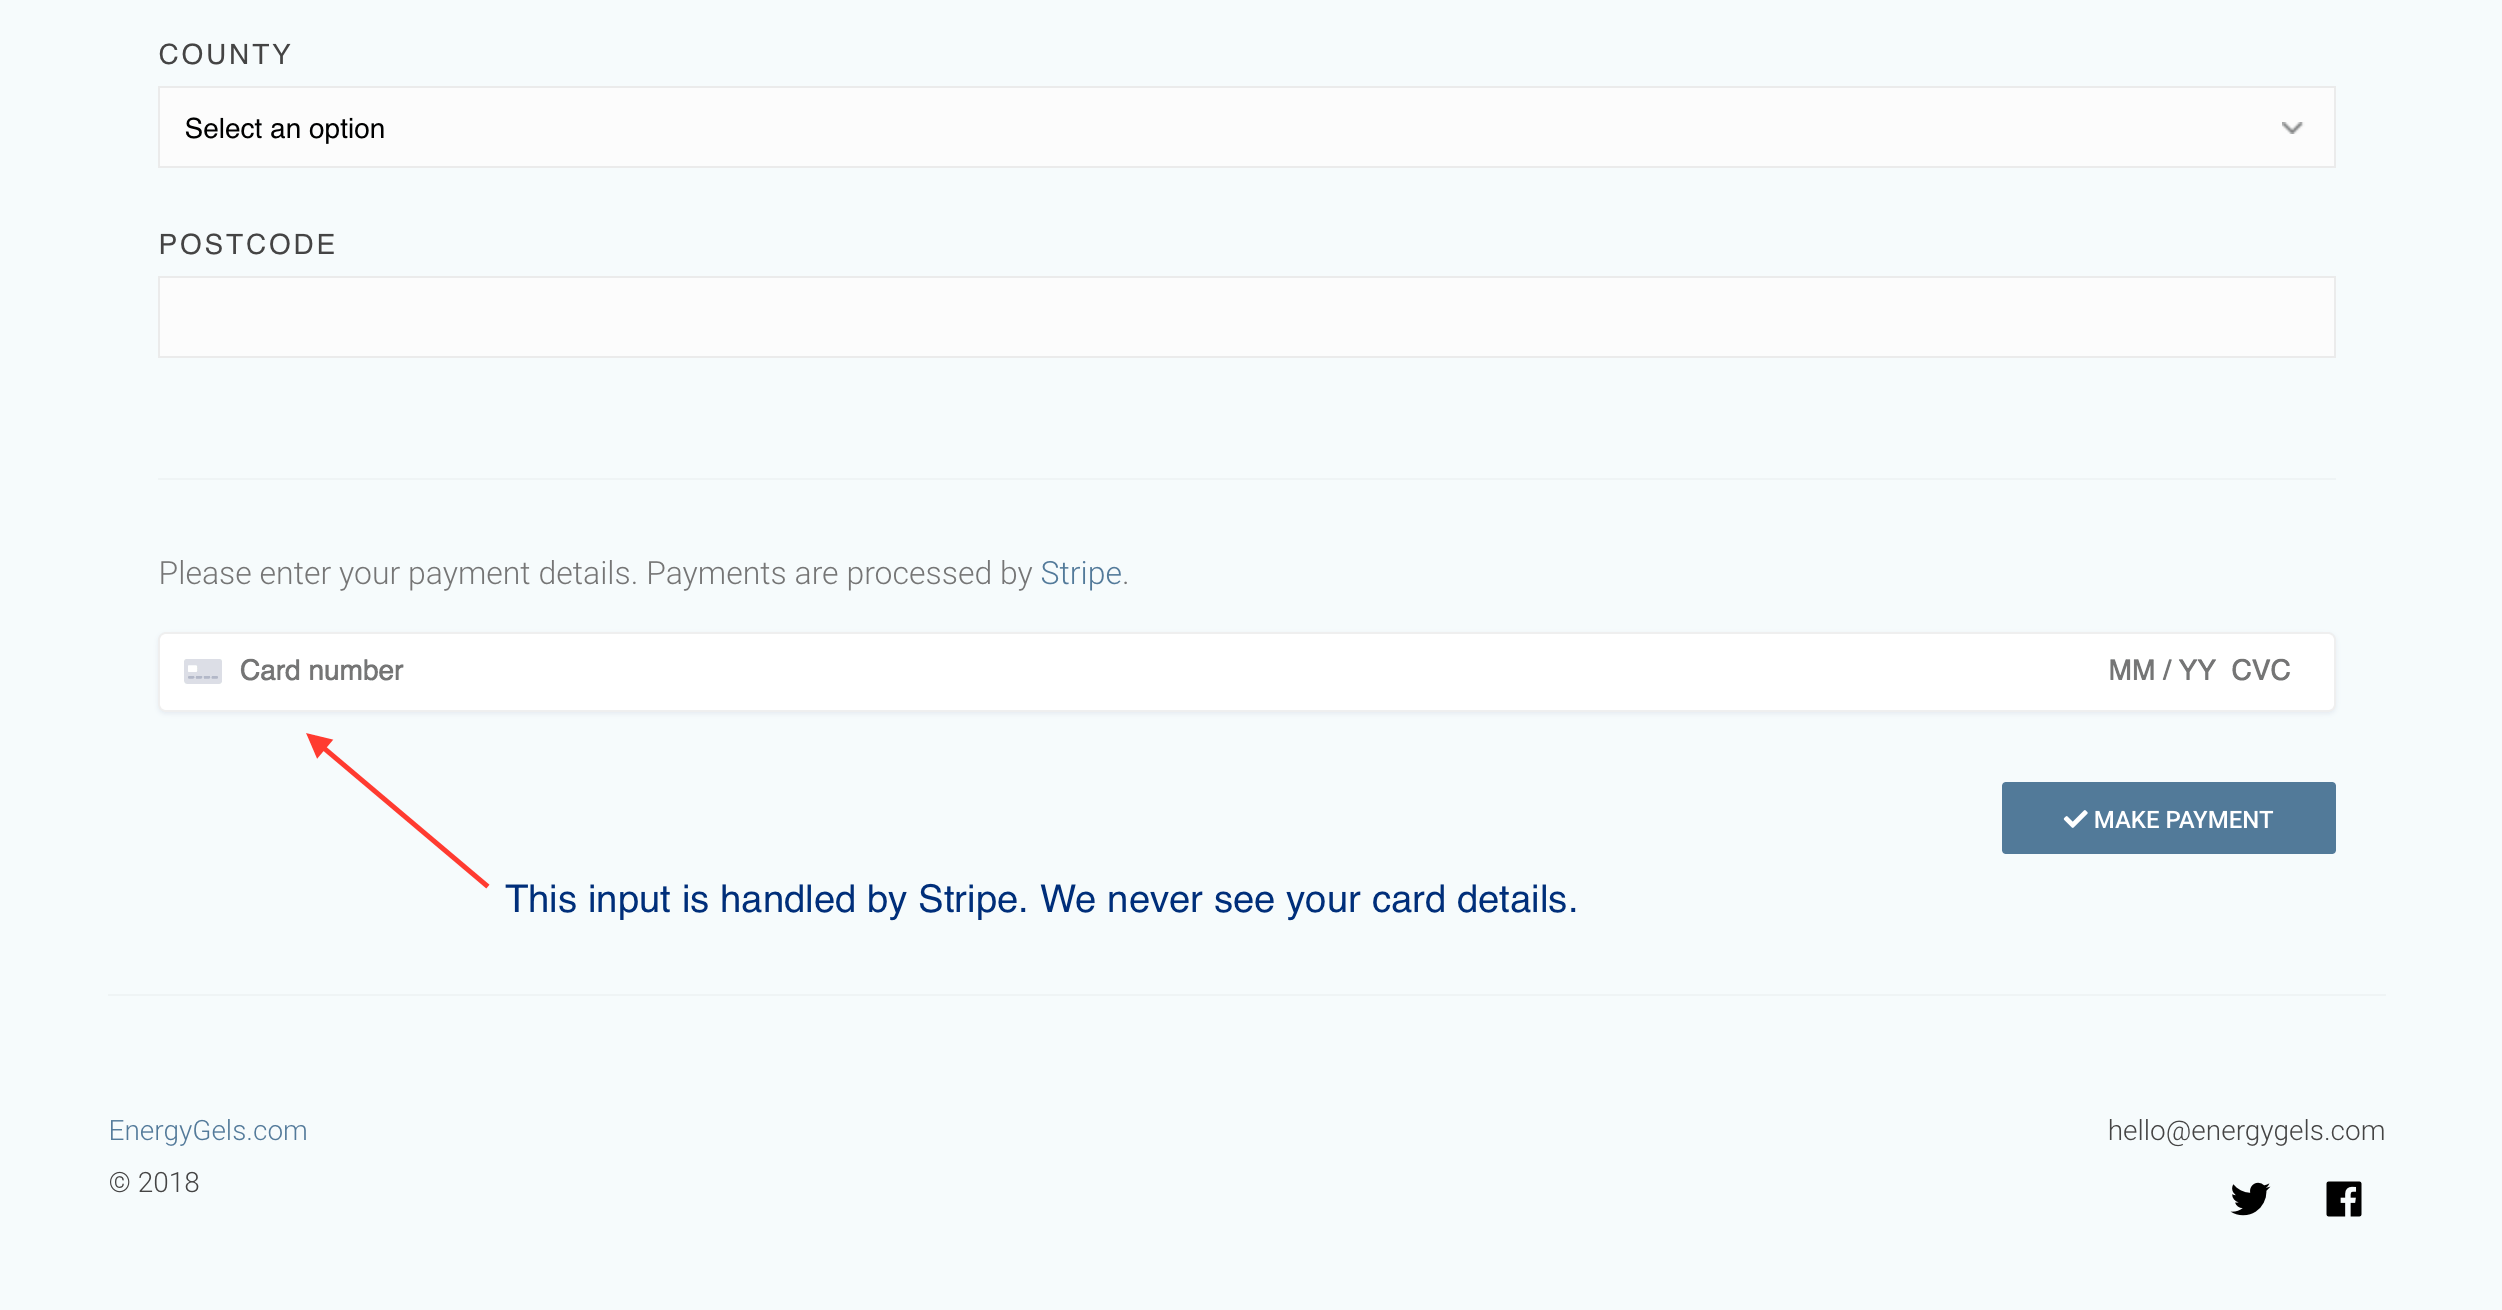 Payments are handled by Stripe